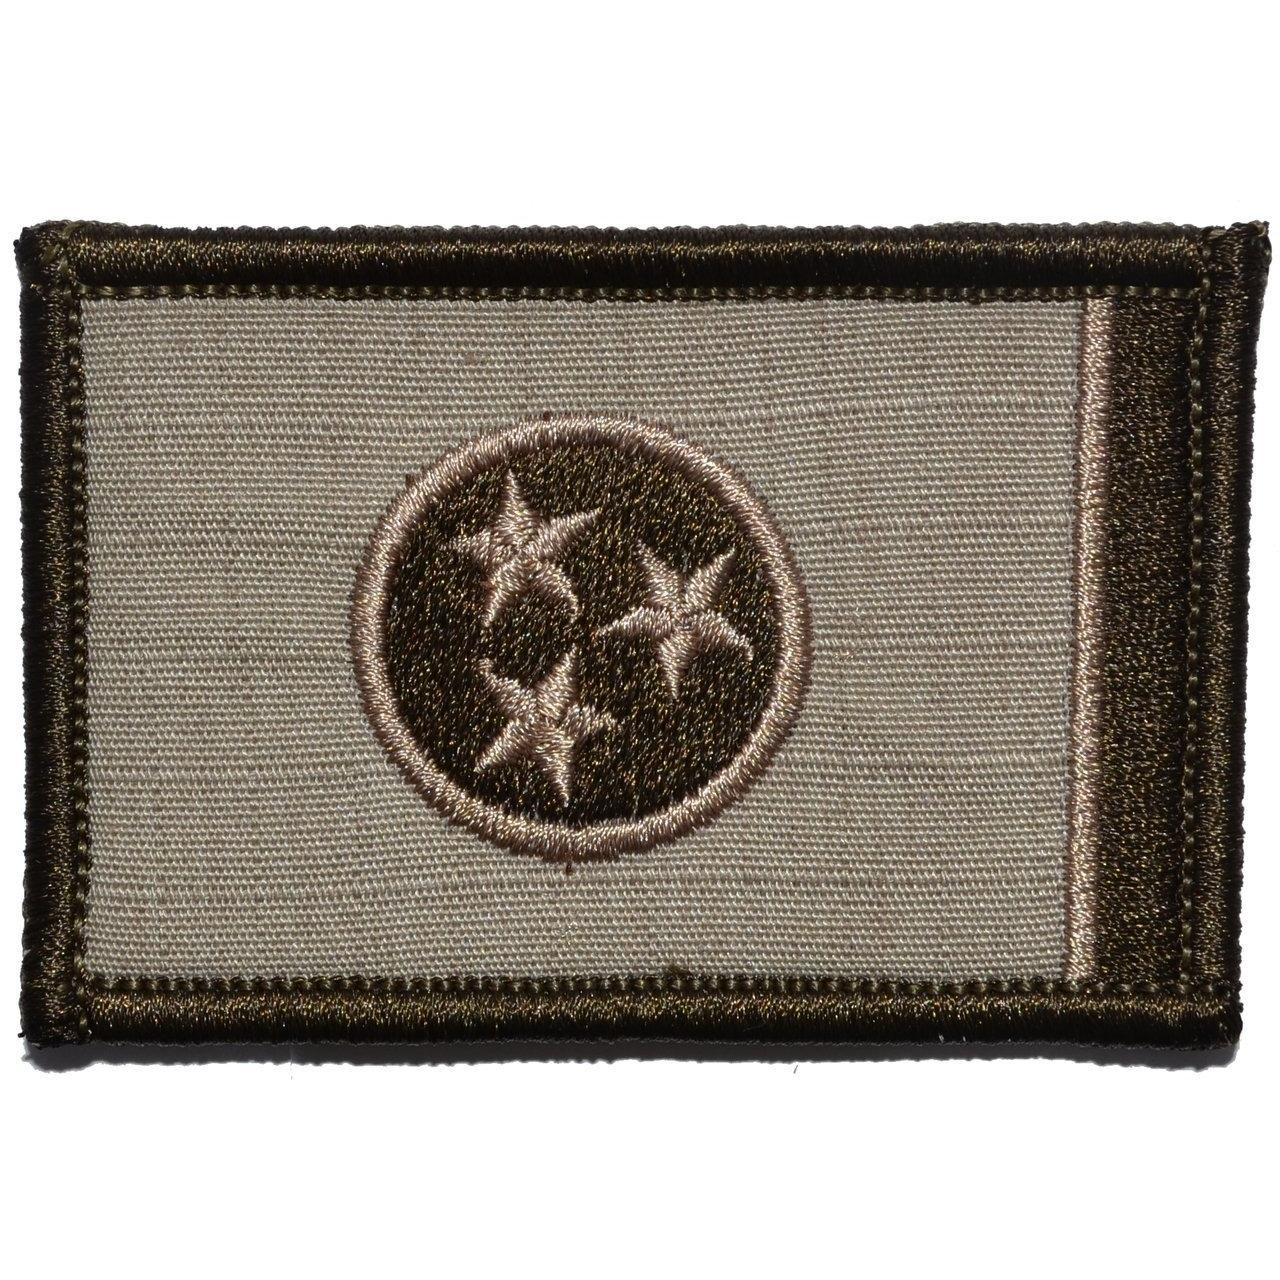 Tennessee State Flag - 2x3 Patch